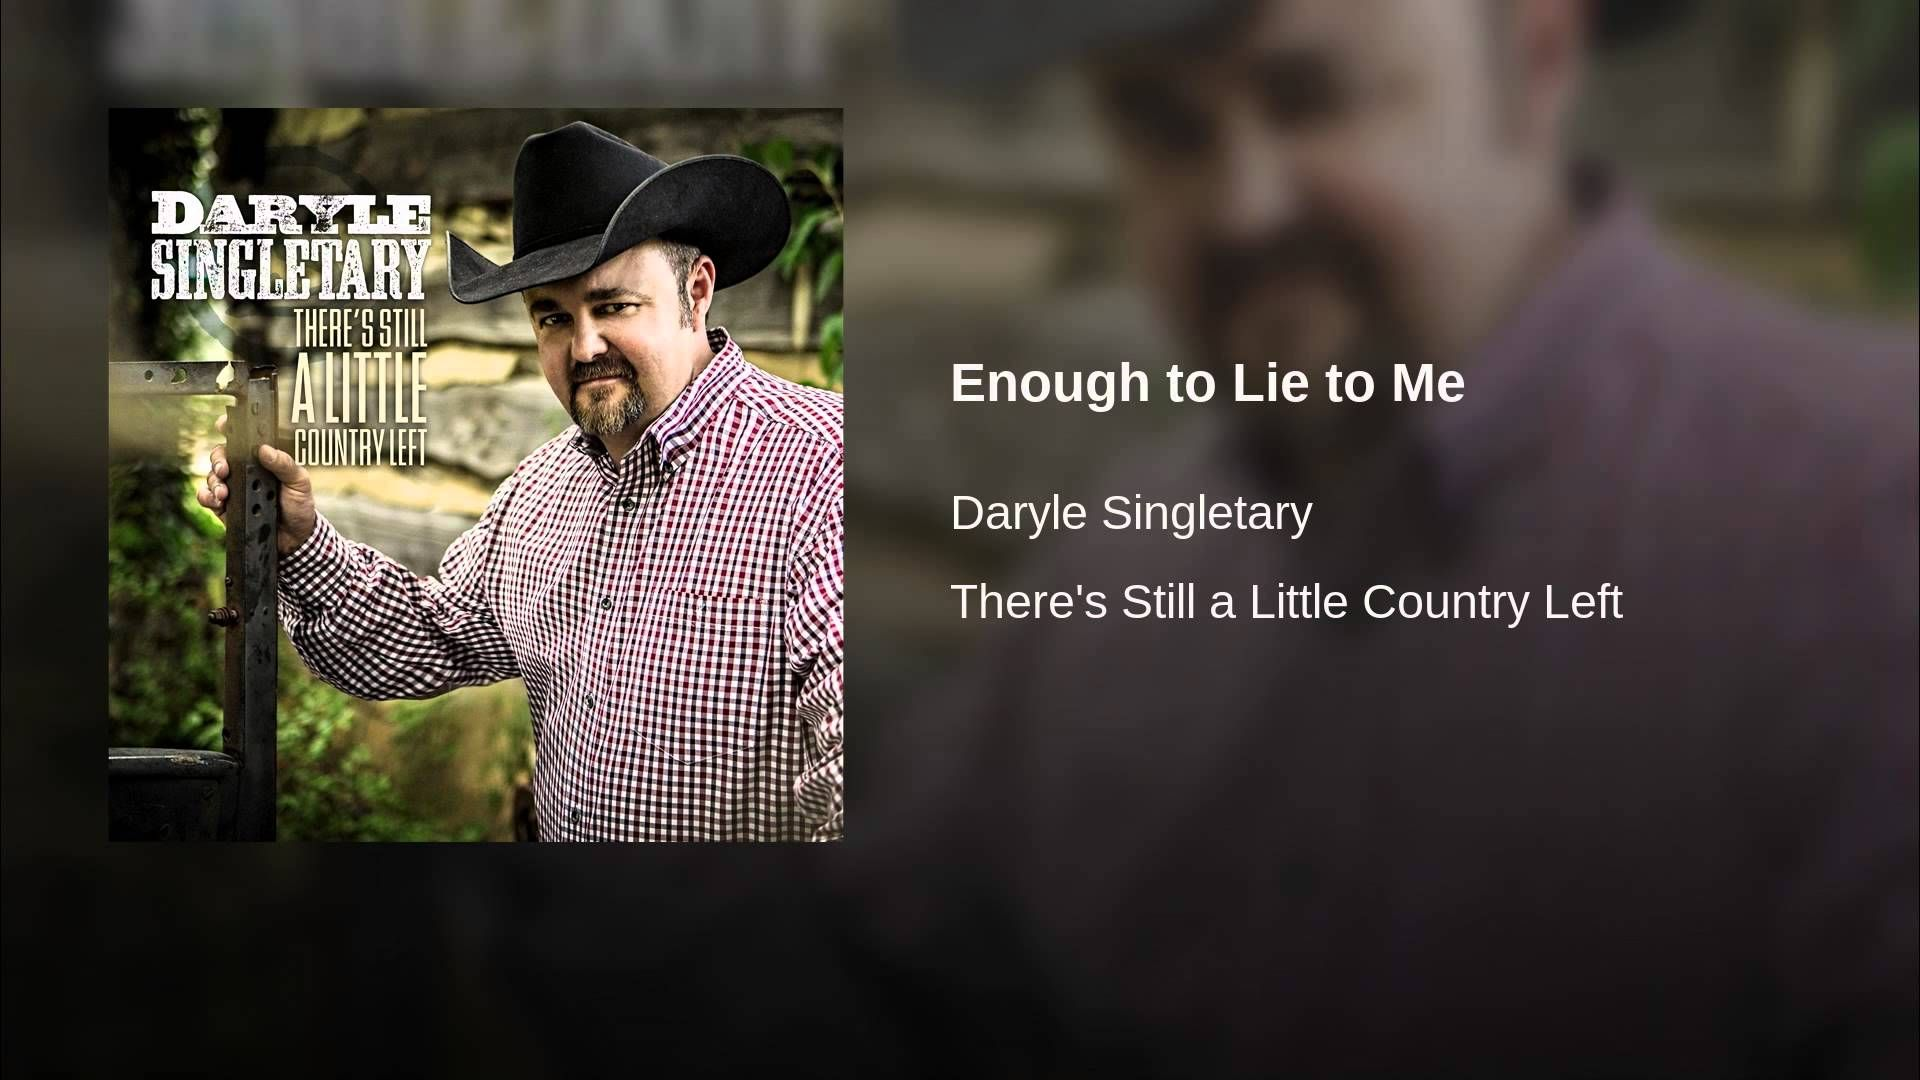 Enough to Lie to Me BLUEGRASS Lie to me Country Whiskey 1920x1080